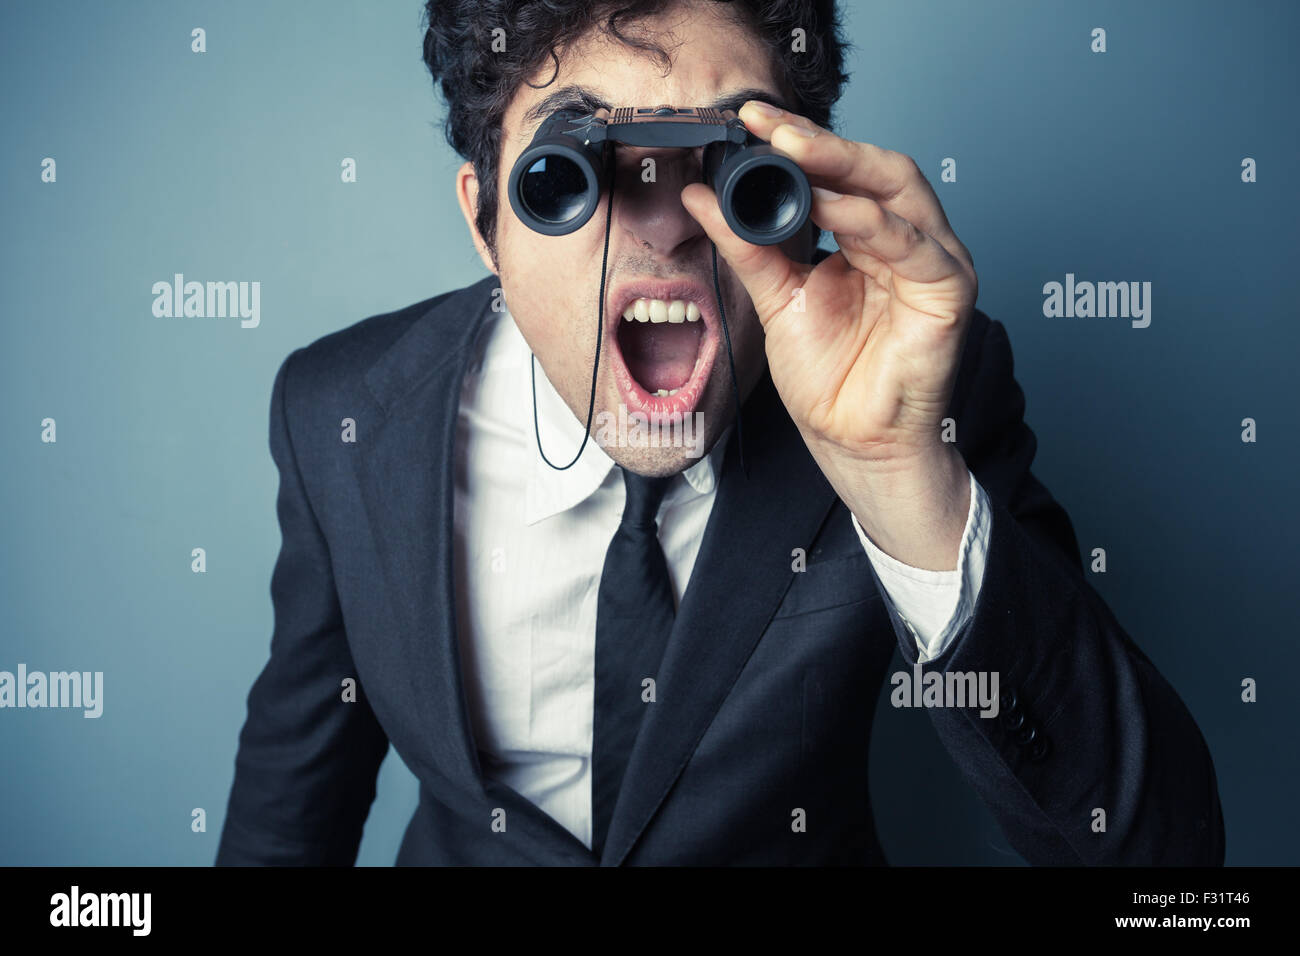 Young businessman is looking through binoculars and is surprised at what he sees - Stock Image